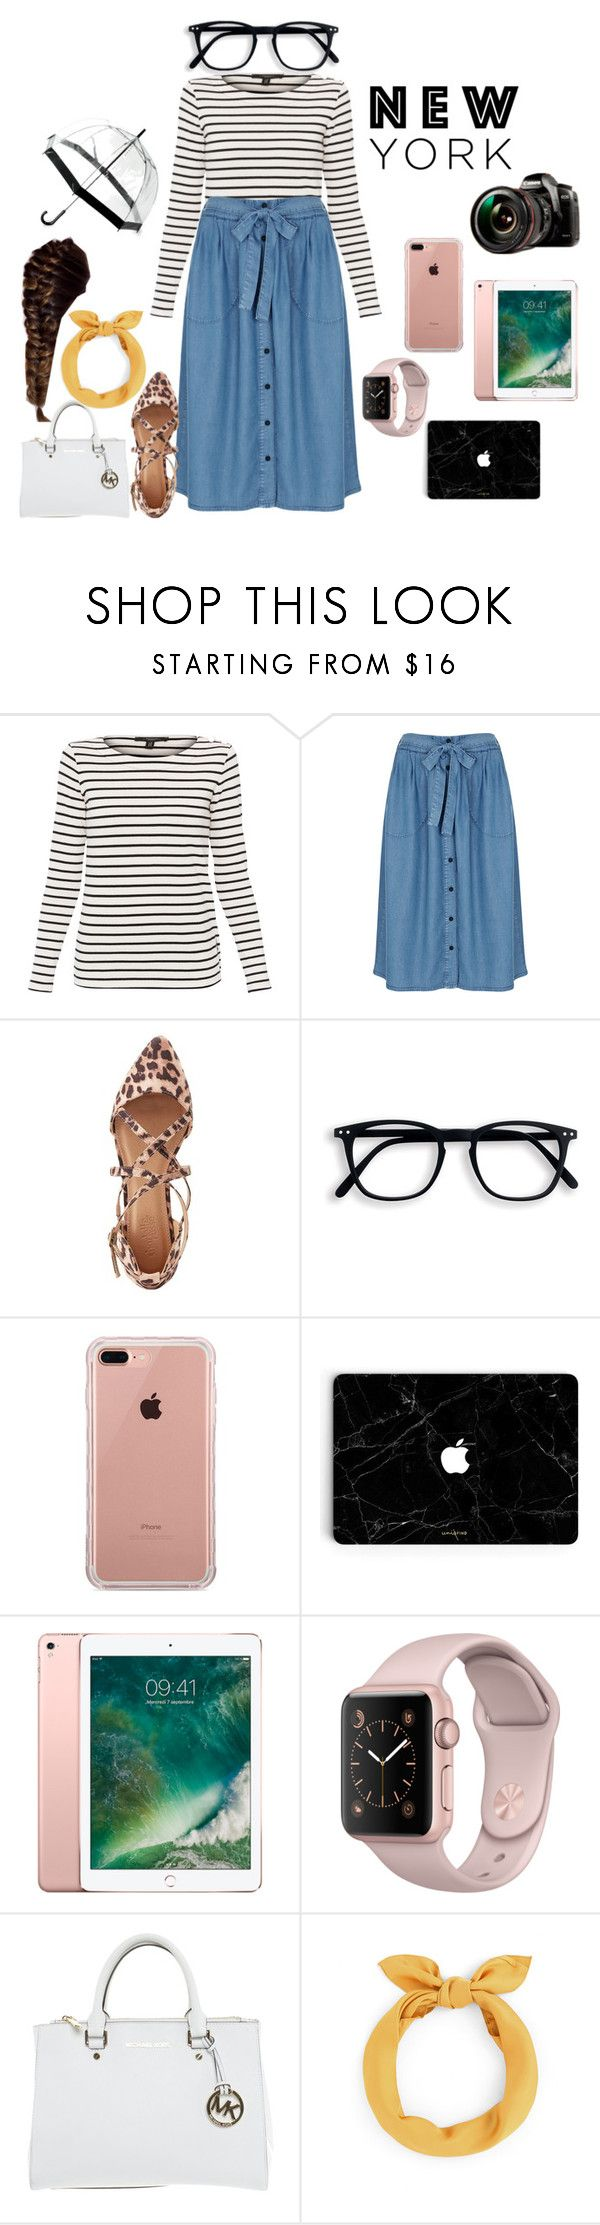 """Sightseeing in New York"" by skirtsandshirts ❤ liked on Polyvore featuring Weekend Max Mara, Miss Selfridge, Charlotte Russe, Belkin, Michael Kors, Saks Fifth Avenue and Panasonic"